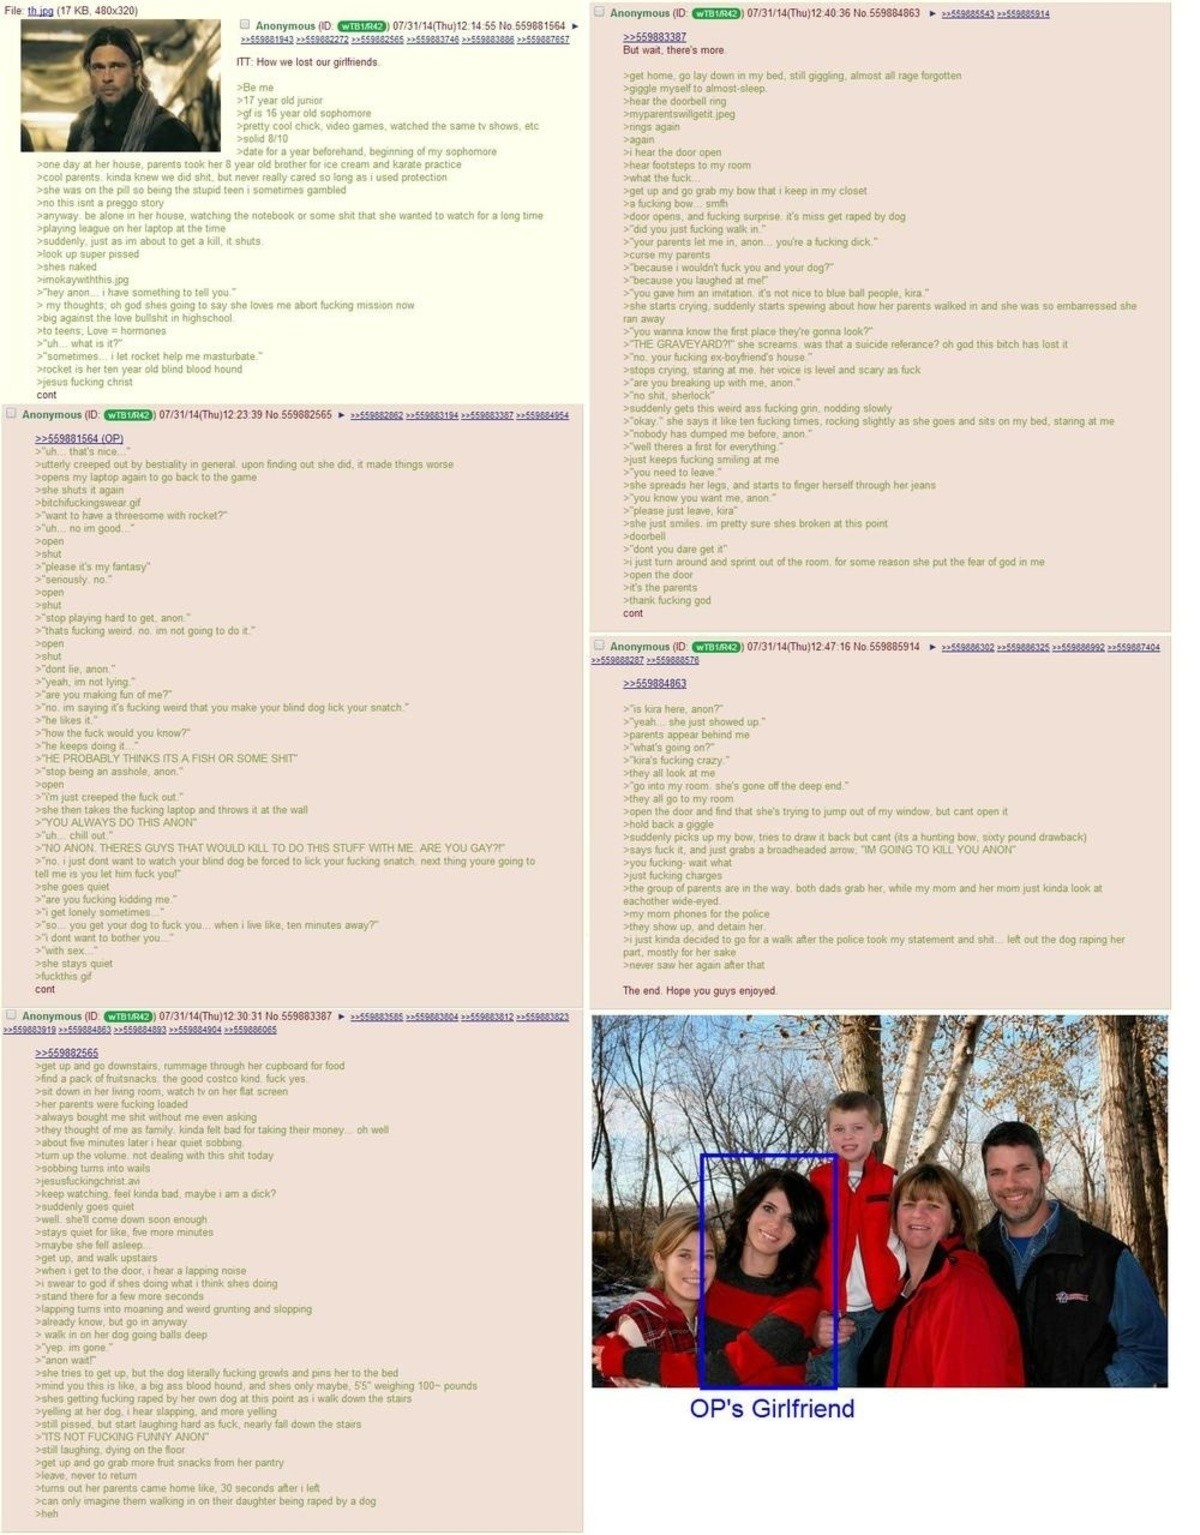 How anon lost his gf. join list: Chanoholic (310 subs)Mention History.. I forgot what this was. I was reading the first part completely oblivious. ''Sometimes... I let Rocket help me masturbate.'' It all came flooding back.